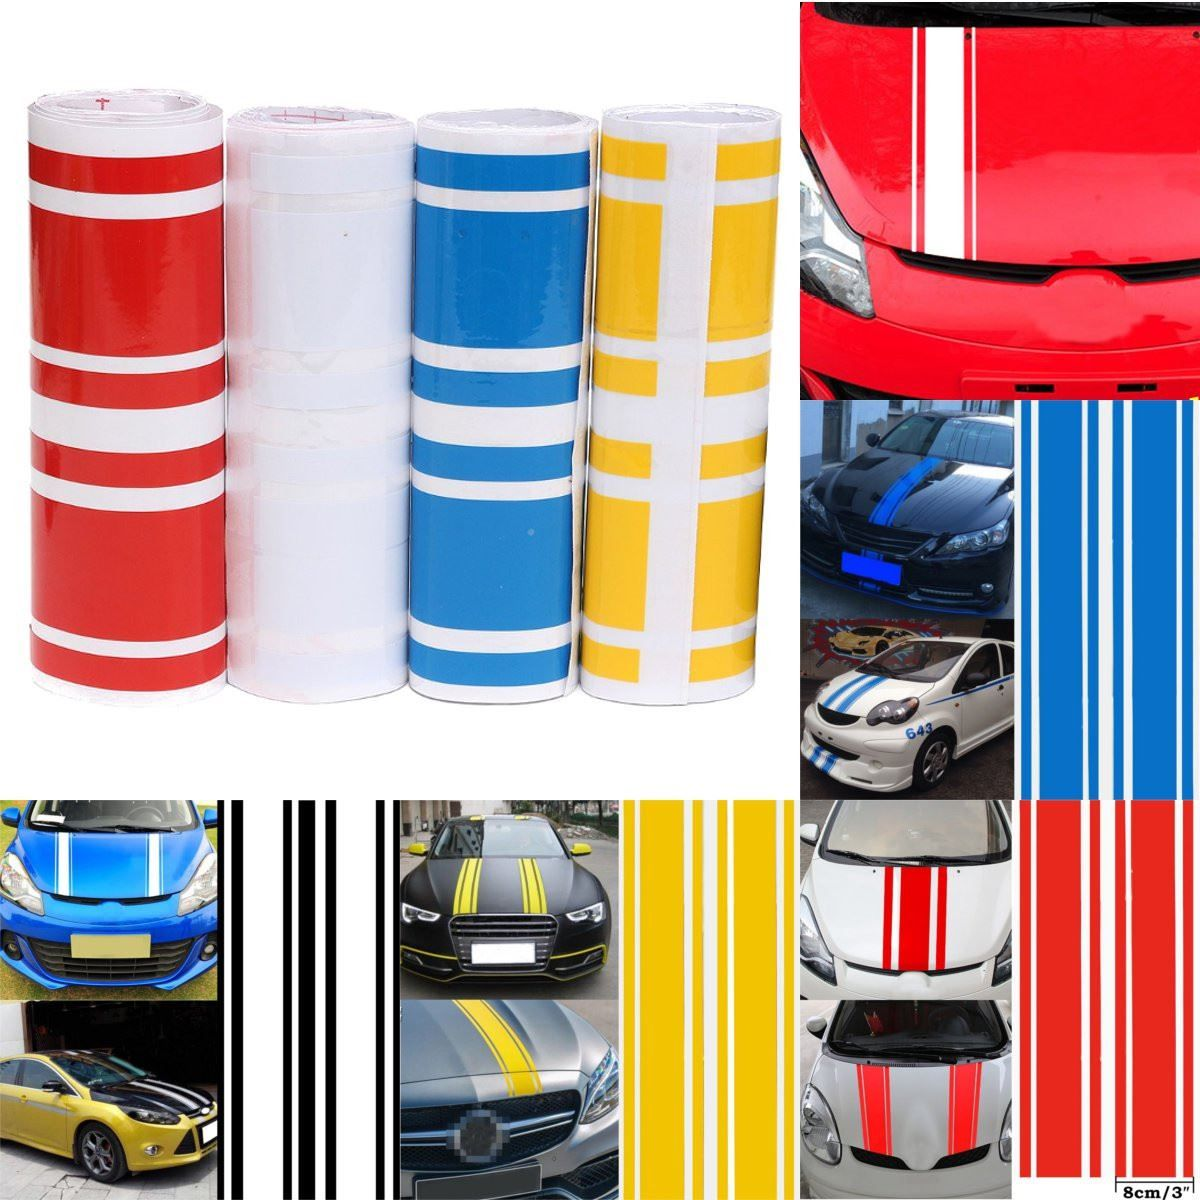 183 x 17.2cm Car-Styling 3D Car Hood Side Vinyl Stripe Sticker Body Bumper Decal Engine Cover Pinstripe 5 Colors